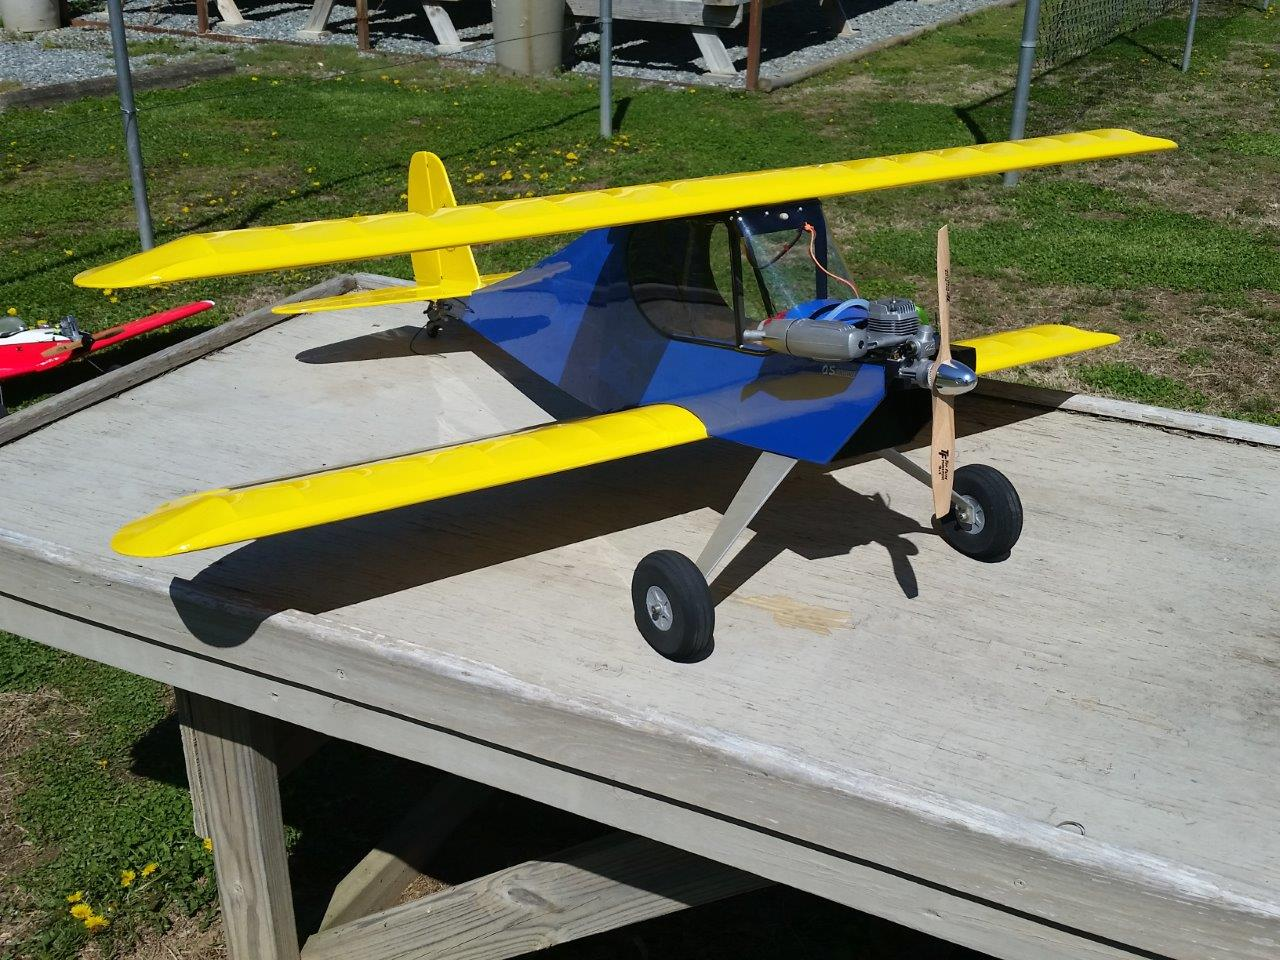 Details about 1,800 Semi Scale Remote Control RC Radio Model Aircraft  Plans, Guides DVD I24